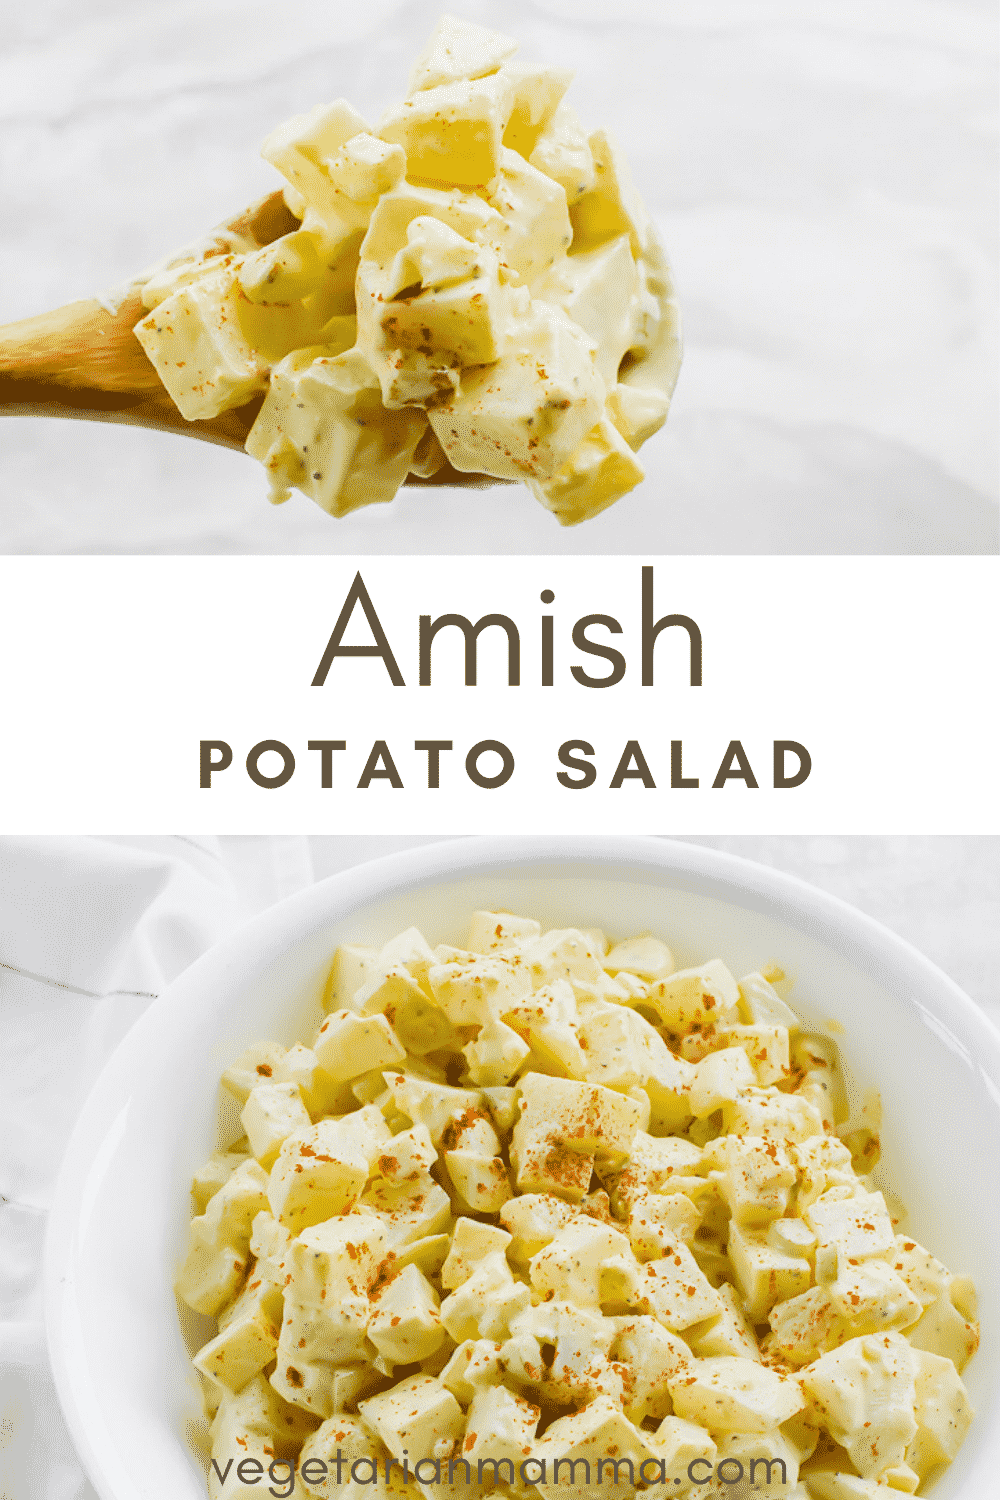 Amish Potato Salad is my favorite BBQ side dish! This is the best potato salad recipe with hard boiled eggs, onions, and celery wrapped in a sweet and tangy yellow mustard dressing. #bbq #easyrecipe #sidedish #amishpotatosalad #potatosalad